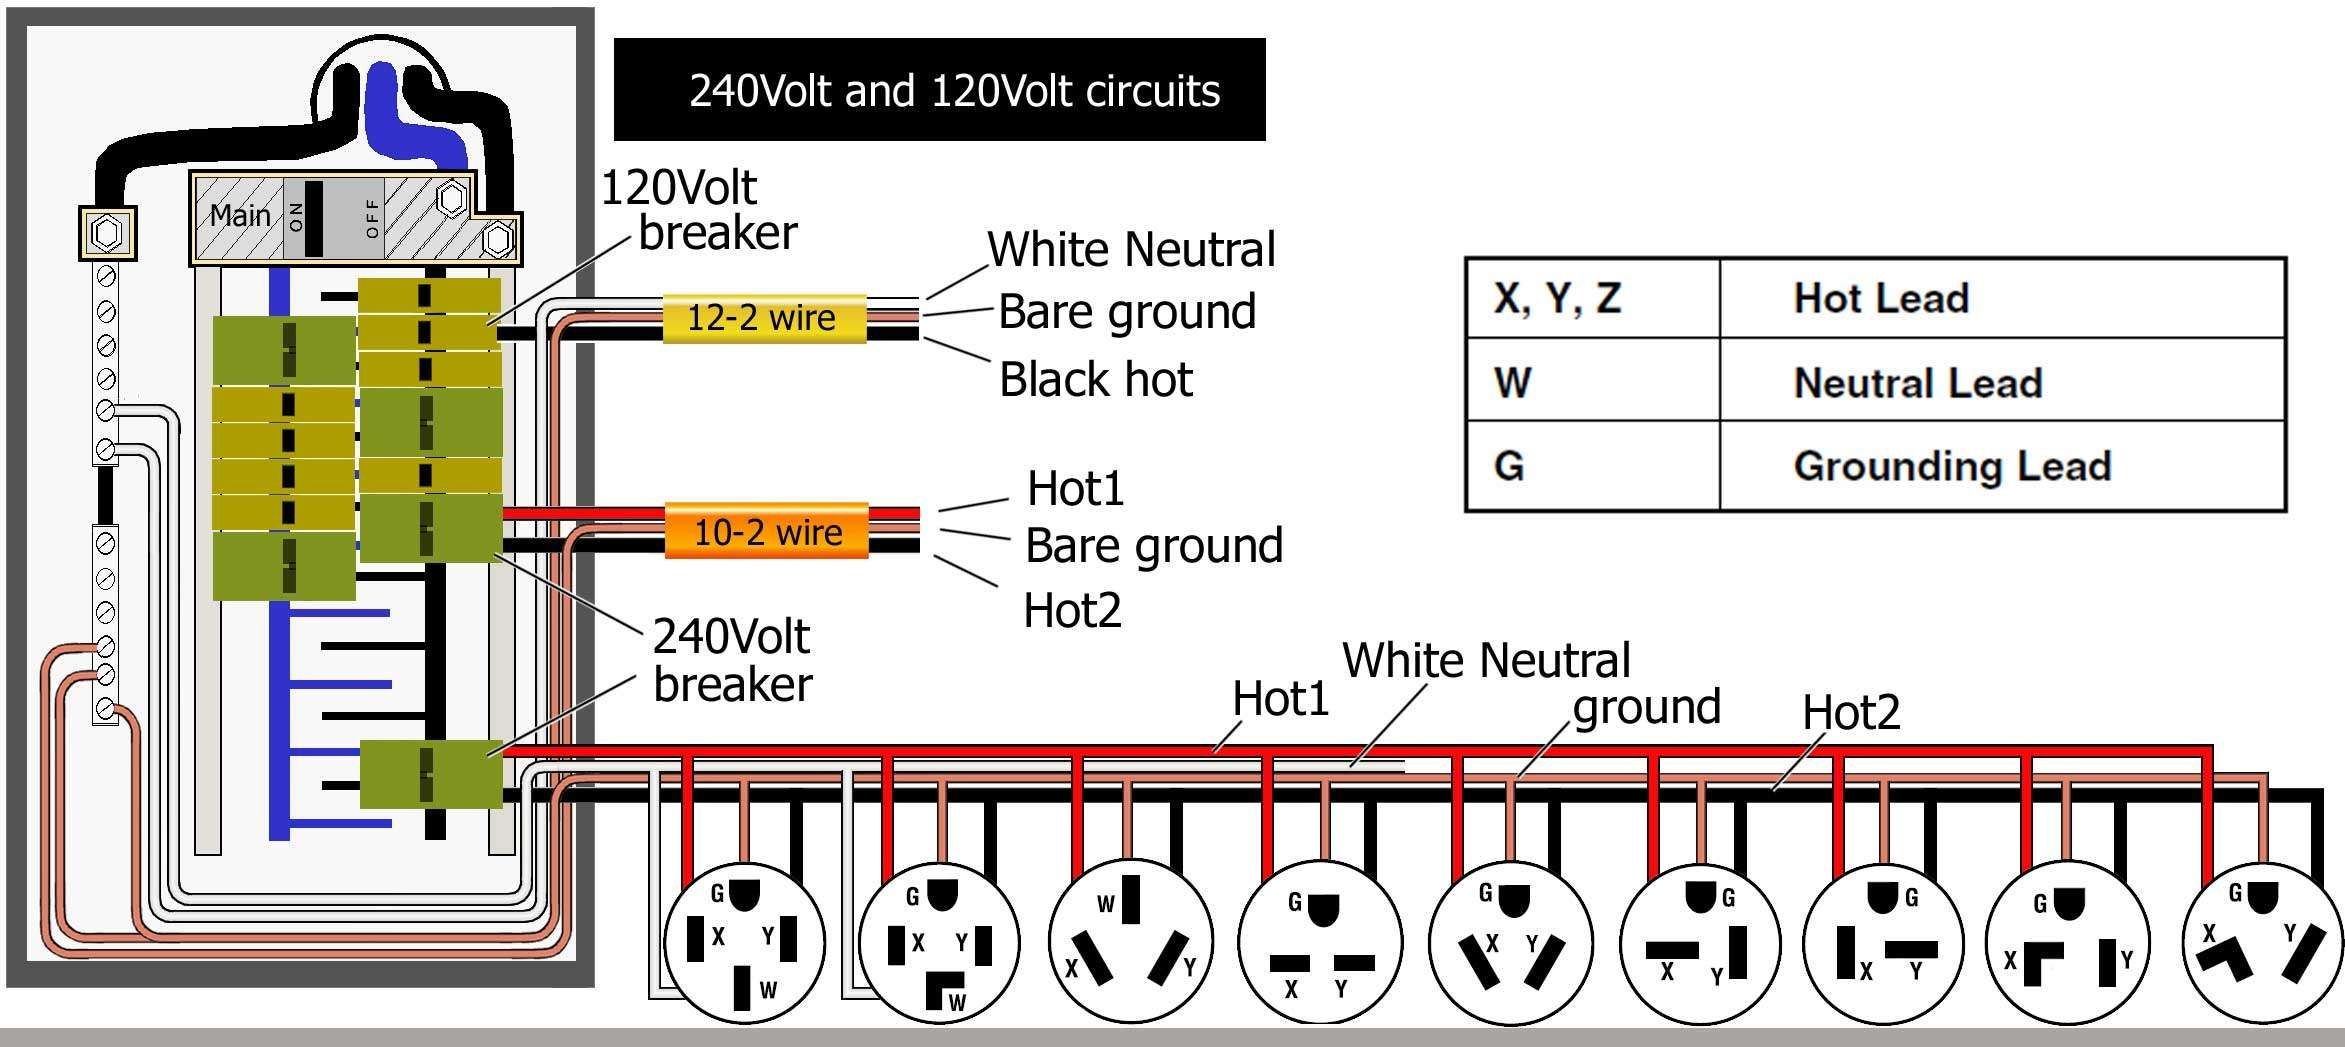 Wiring Diagram Outlets Beautiful Wiring Diagram Outlets Splendid Line Wiring Diagram Help Sign Wiring A Plug Home Electrical Wiring Electrical Wiring Diagram